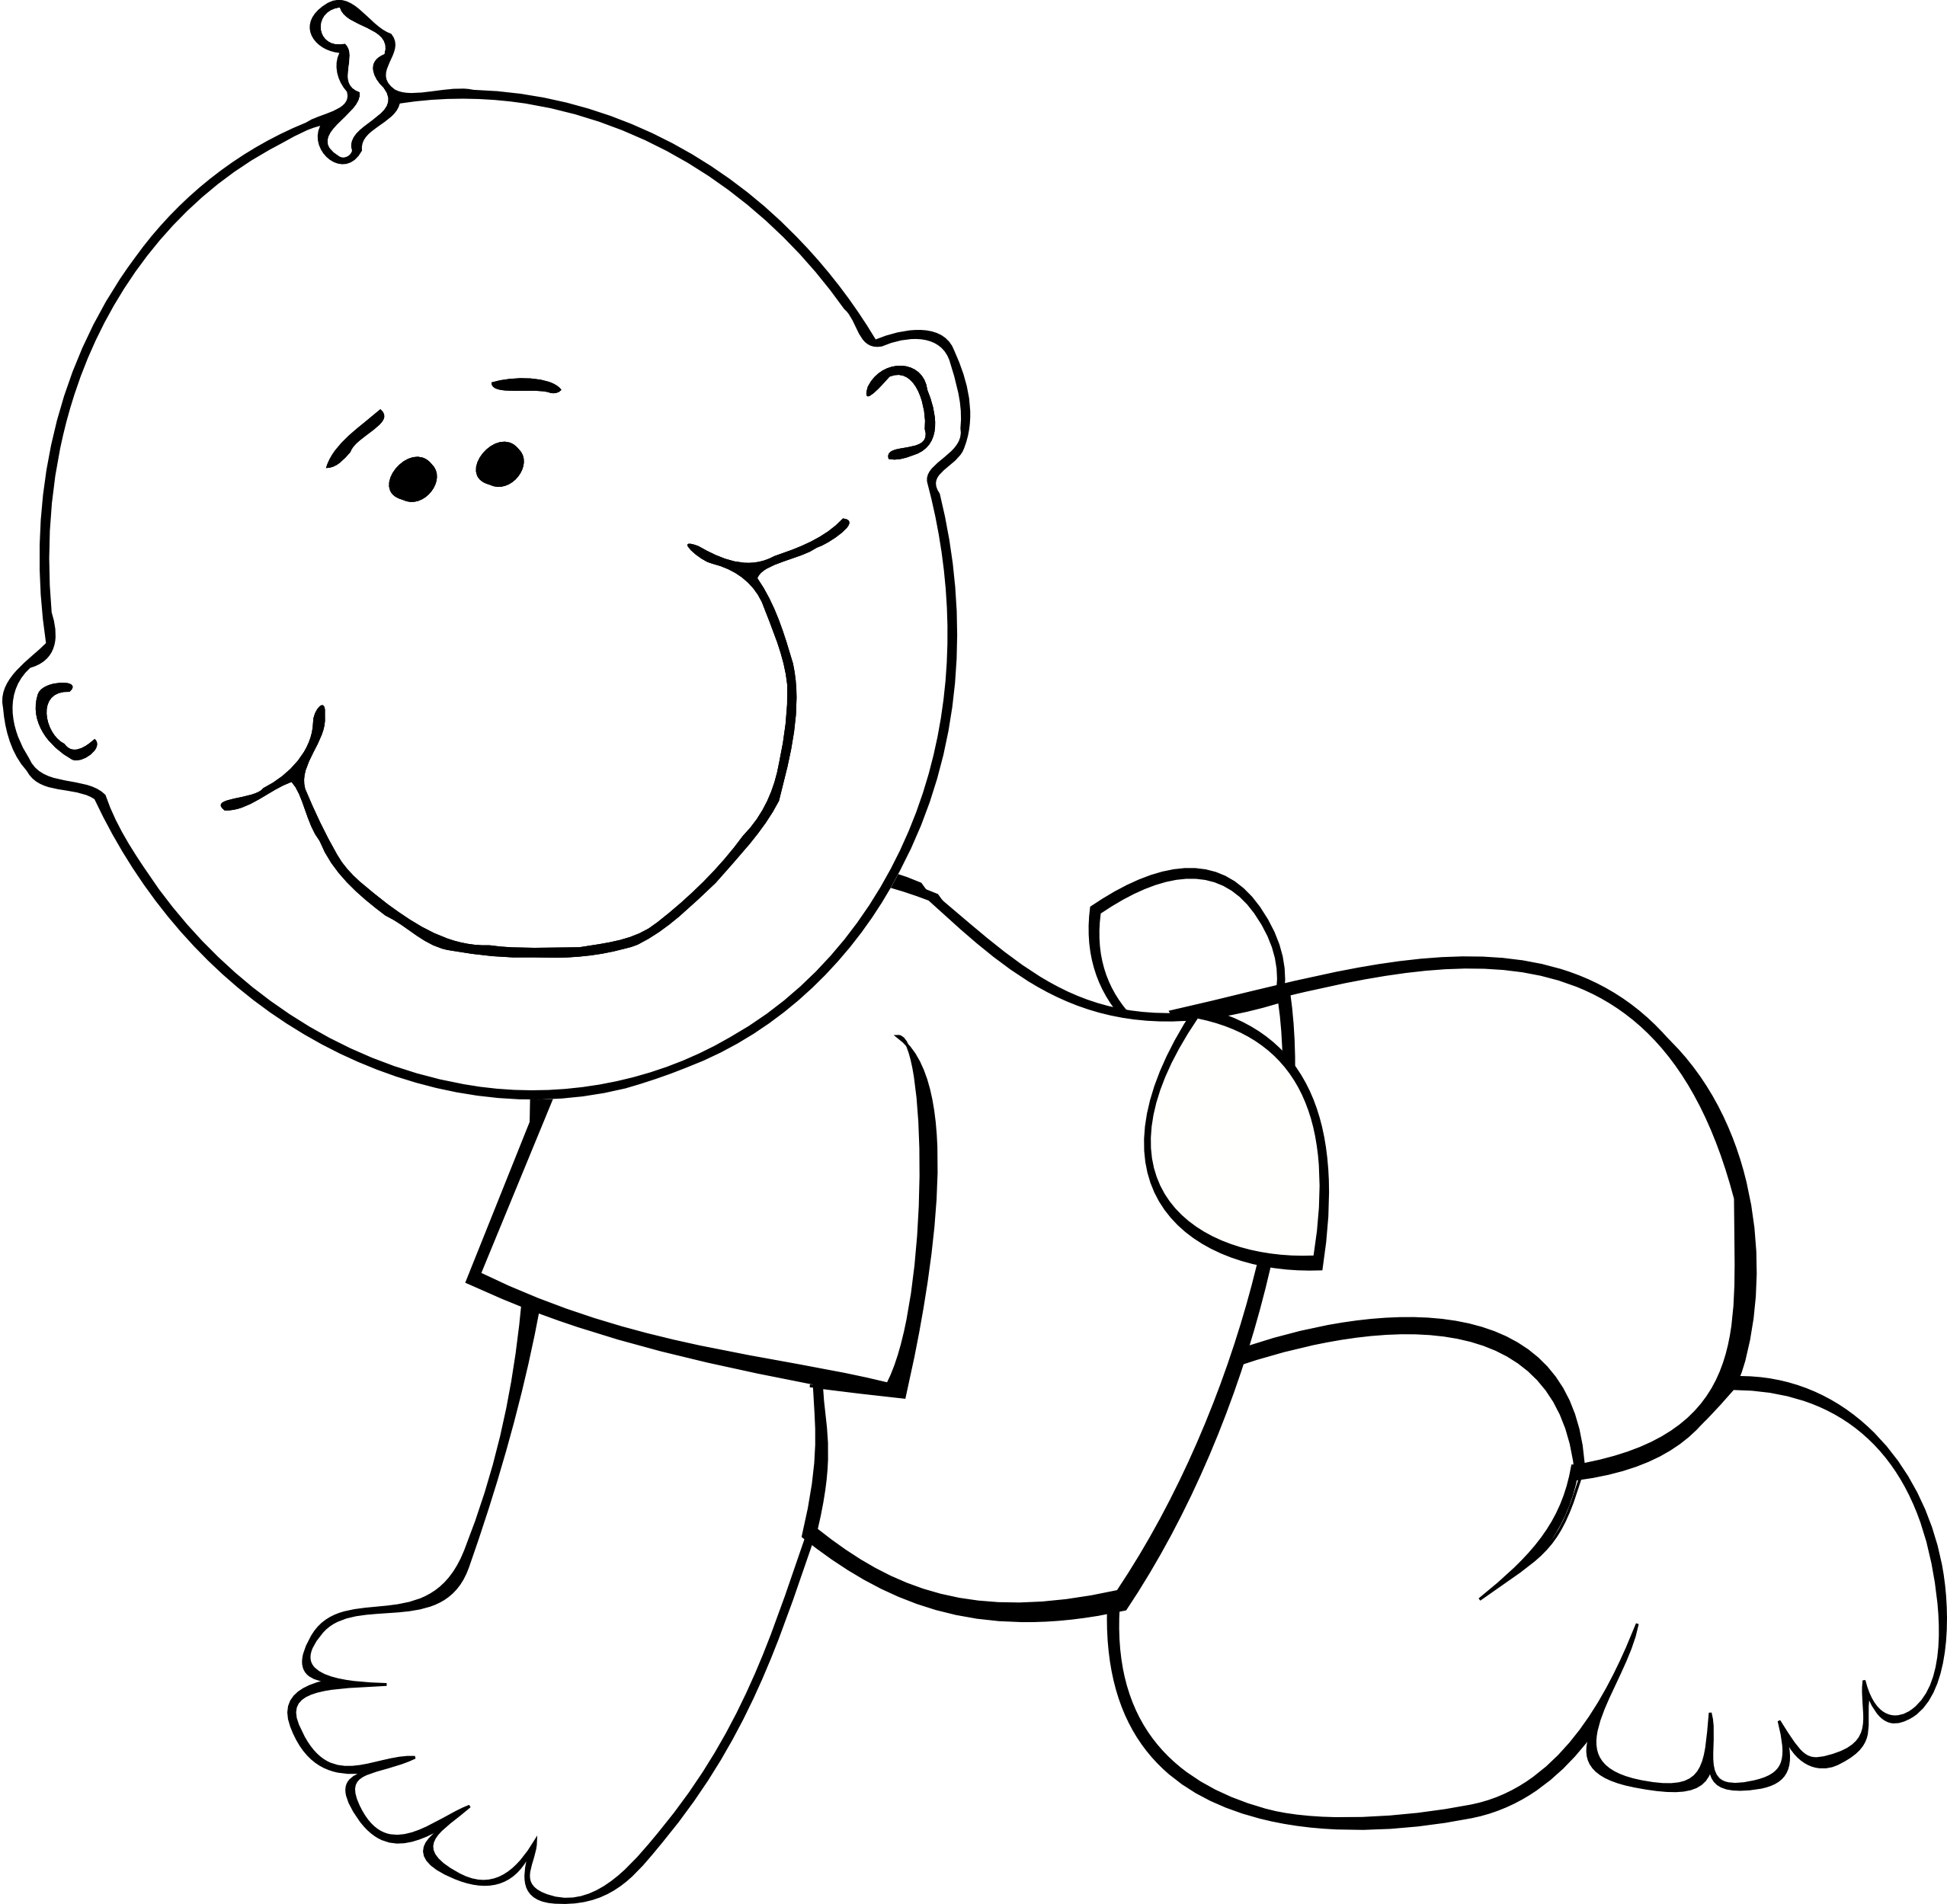 Crawling Baby Boy Outline Svg Clip Arts 600 X 592 Px.